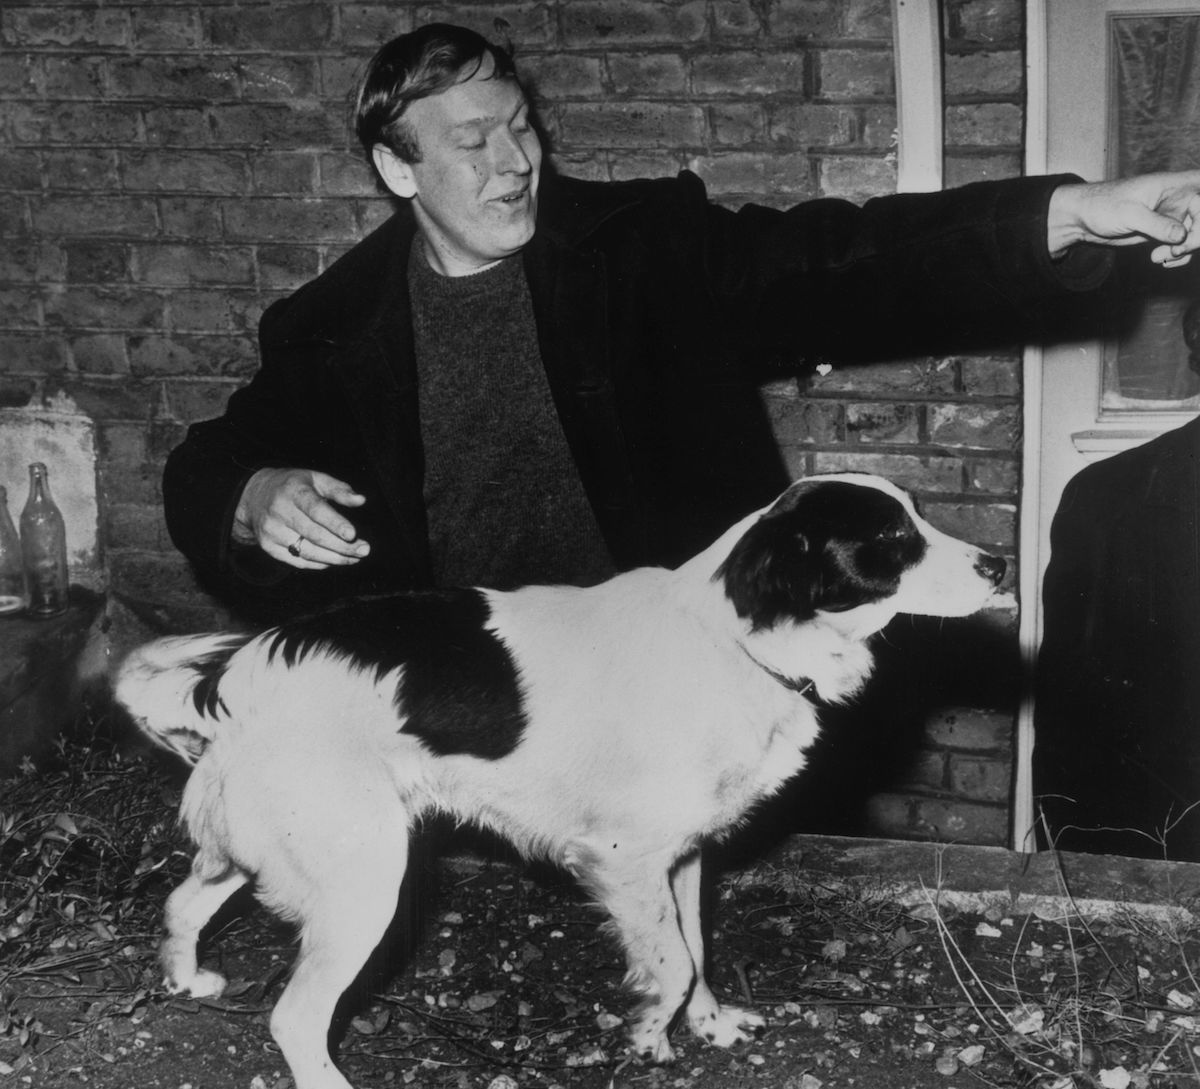 Pickles the Dog, who found the Jules Rimet Trophy ahead of the 1966 World Cup, with his owner David Corbett